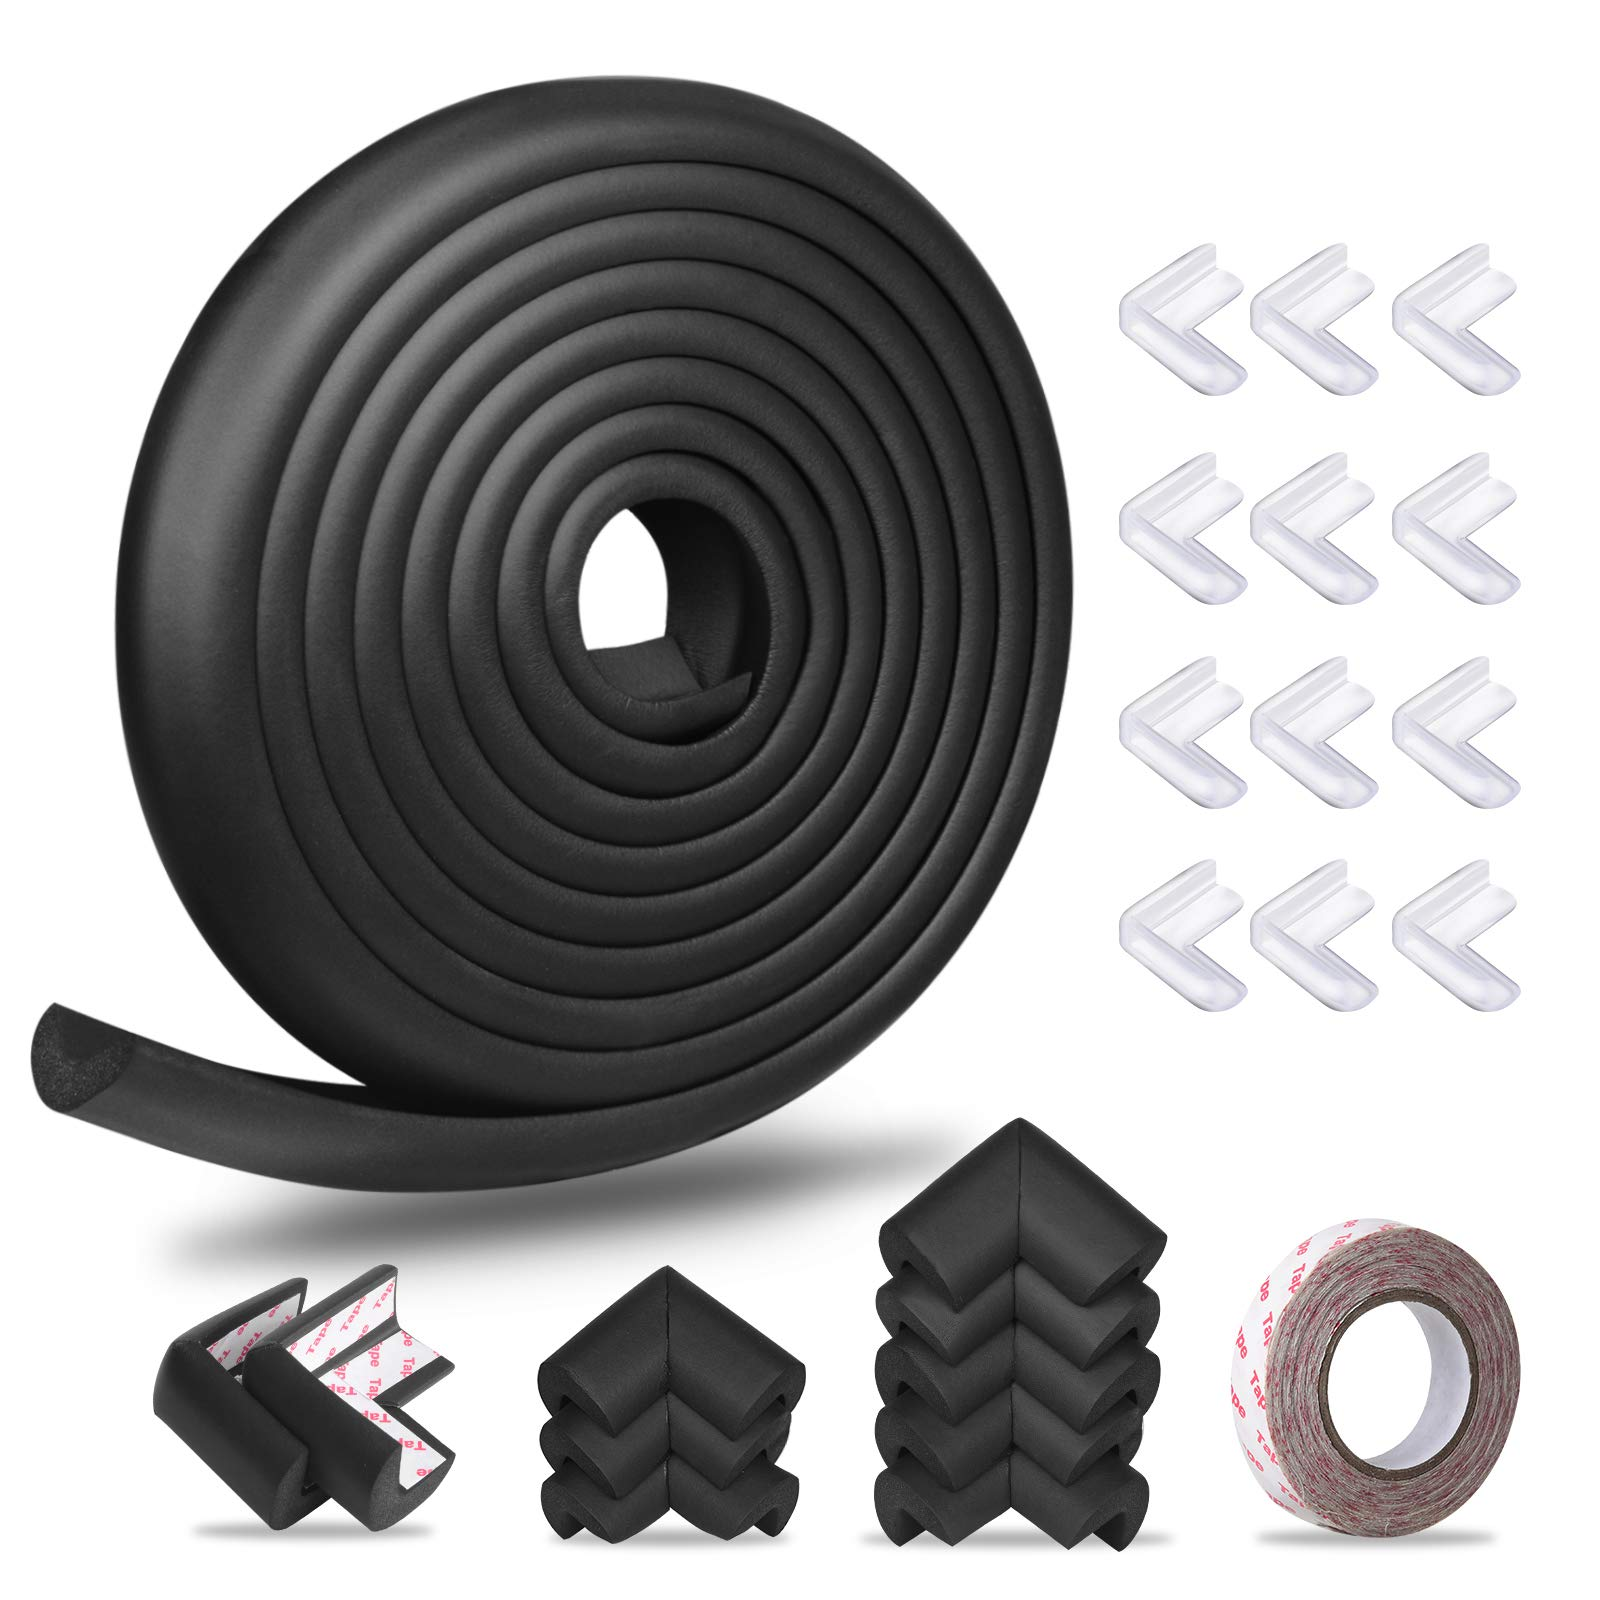 Baby Proofing Corner Guards Edge Protectors, Momcozy Child Safety Foam Fireplace Table Bumper, Furniture Edge Guards, 16.5 ft Edge + 20 Corners, Pre-Taped Baby Safety Cushion, High Elasticity(Black)